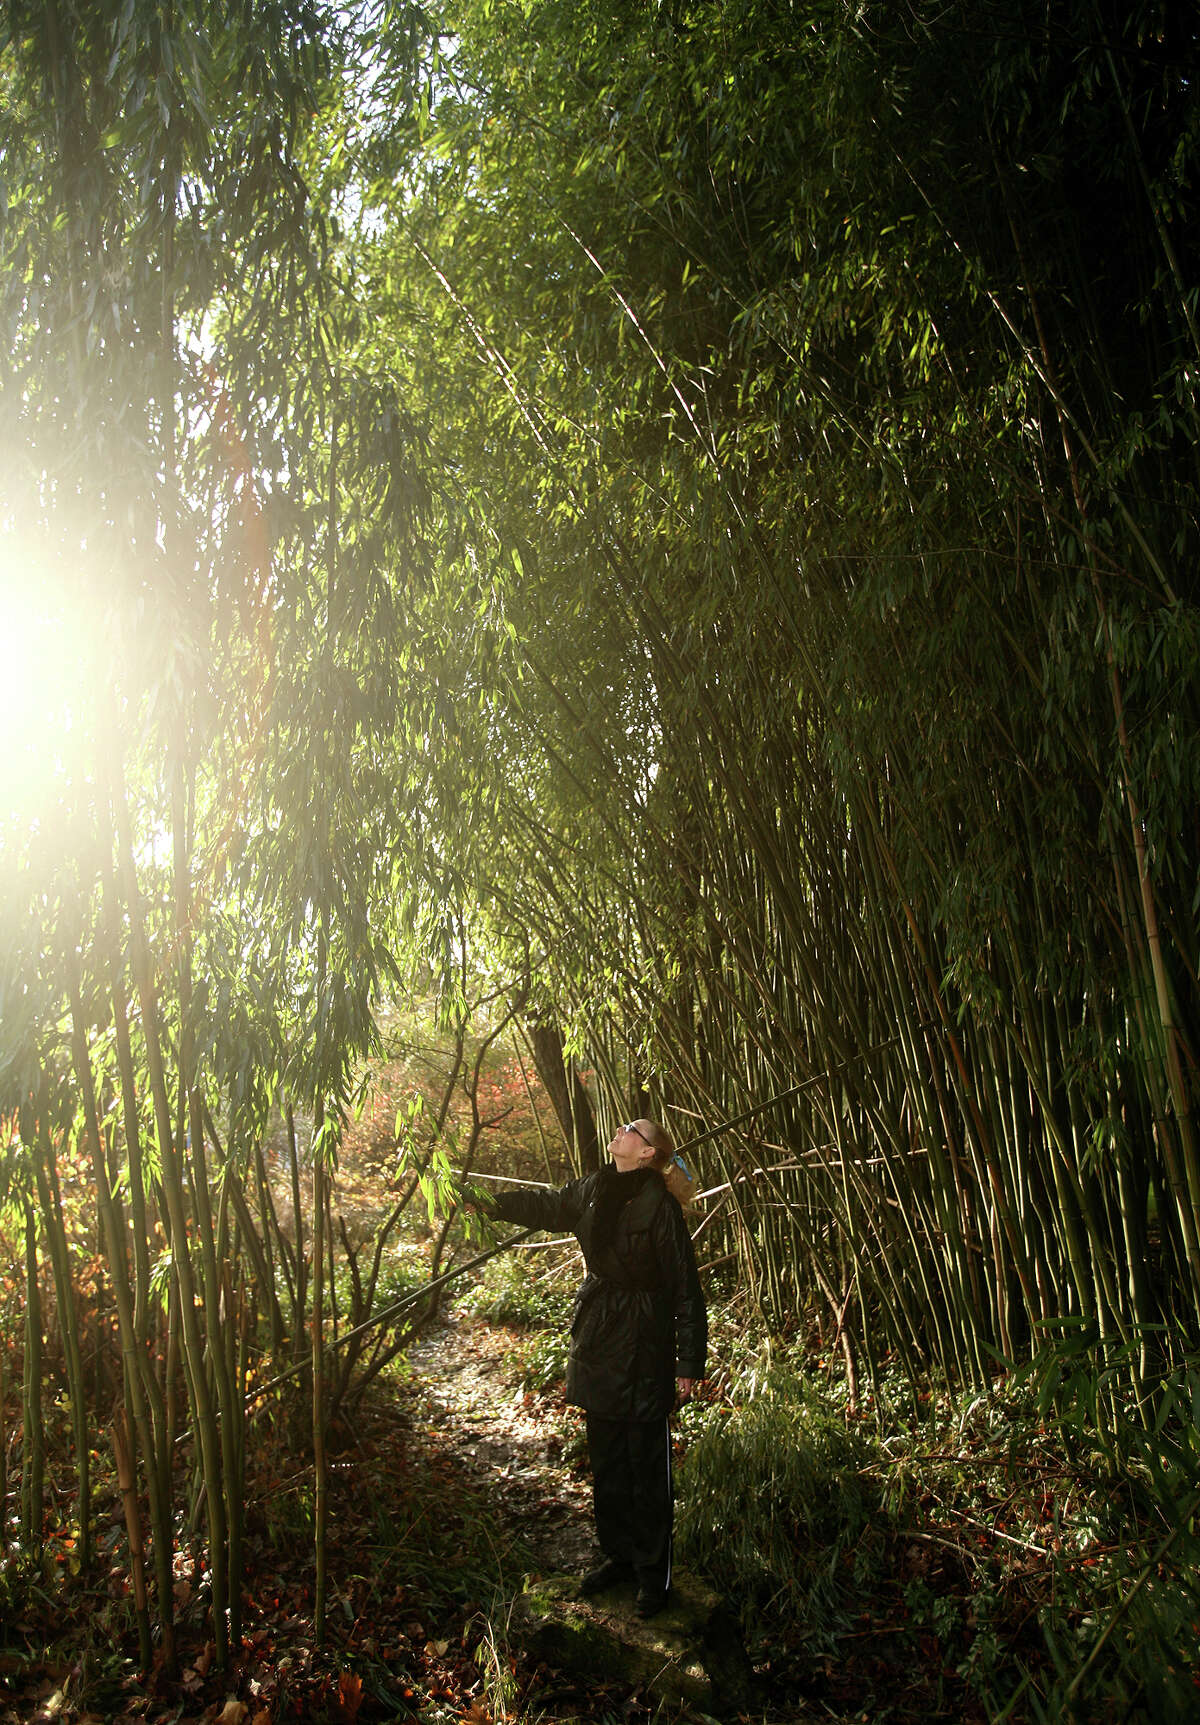 Priscilla Weadon checks out an enormous stand of bamboo growing near her home in Westport on Wednesday, November 28, 2012.